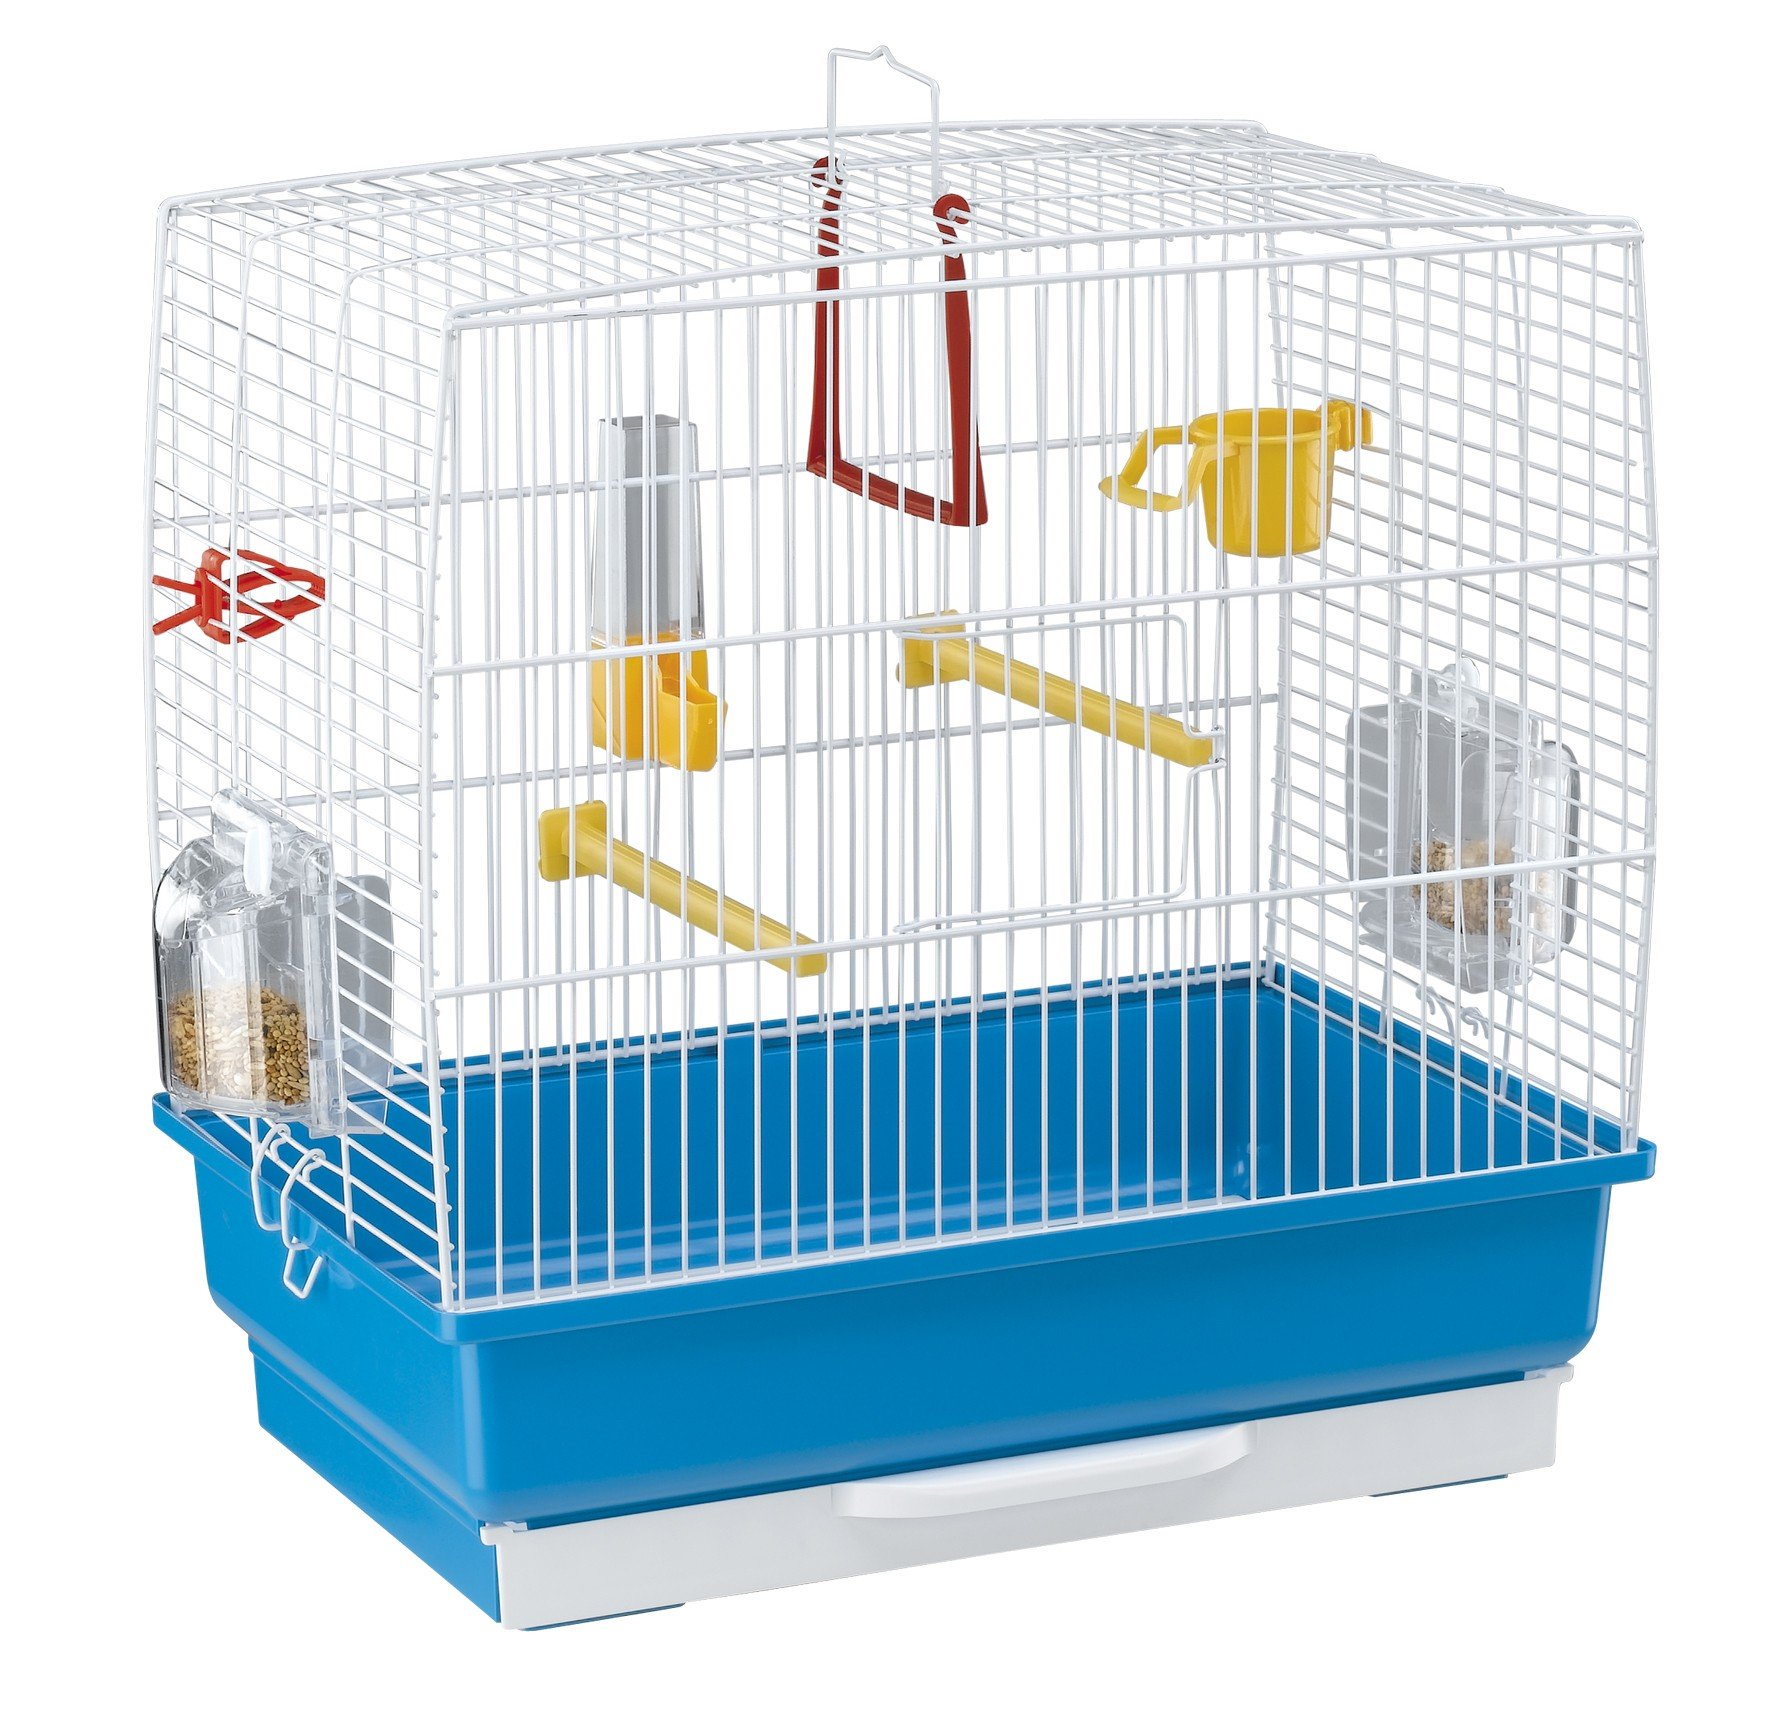 Ferplast Rekord 2 Bird Cage and Accessories